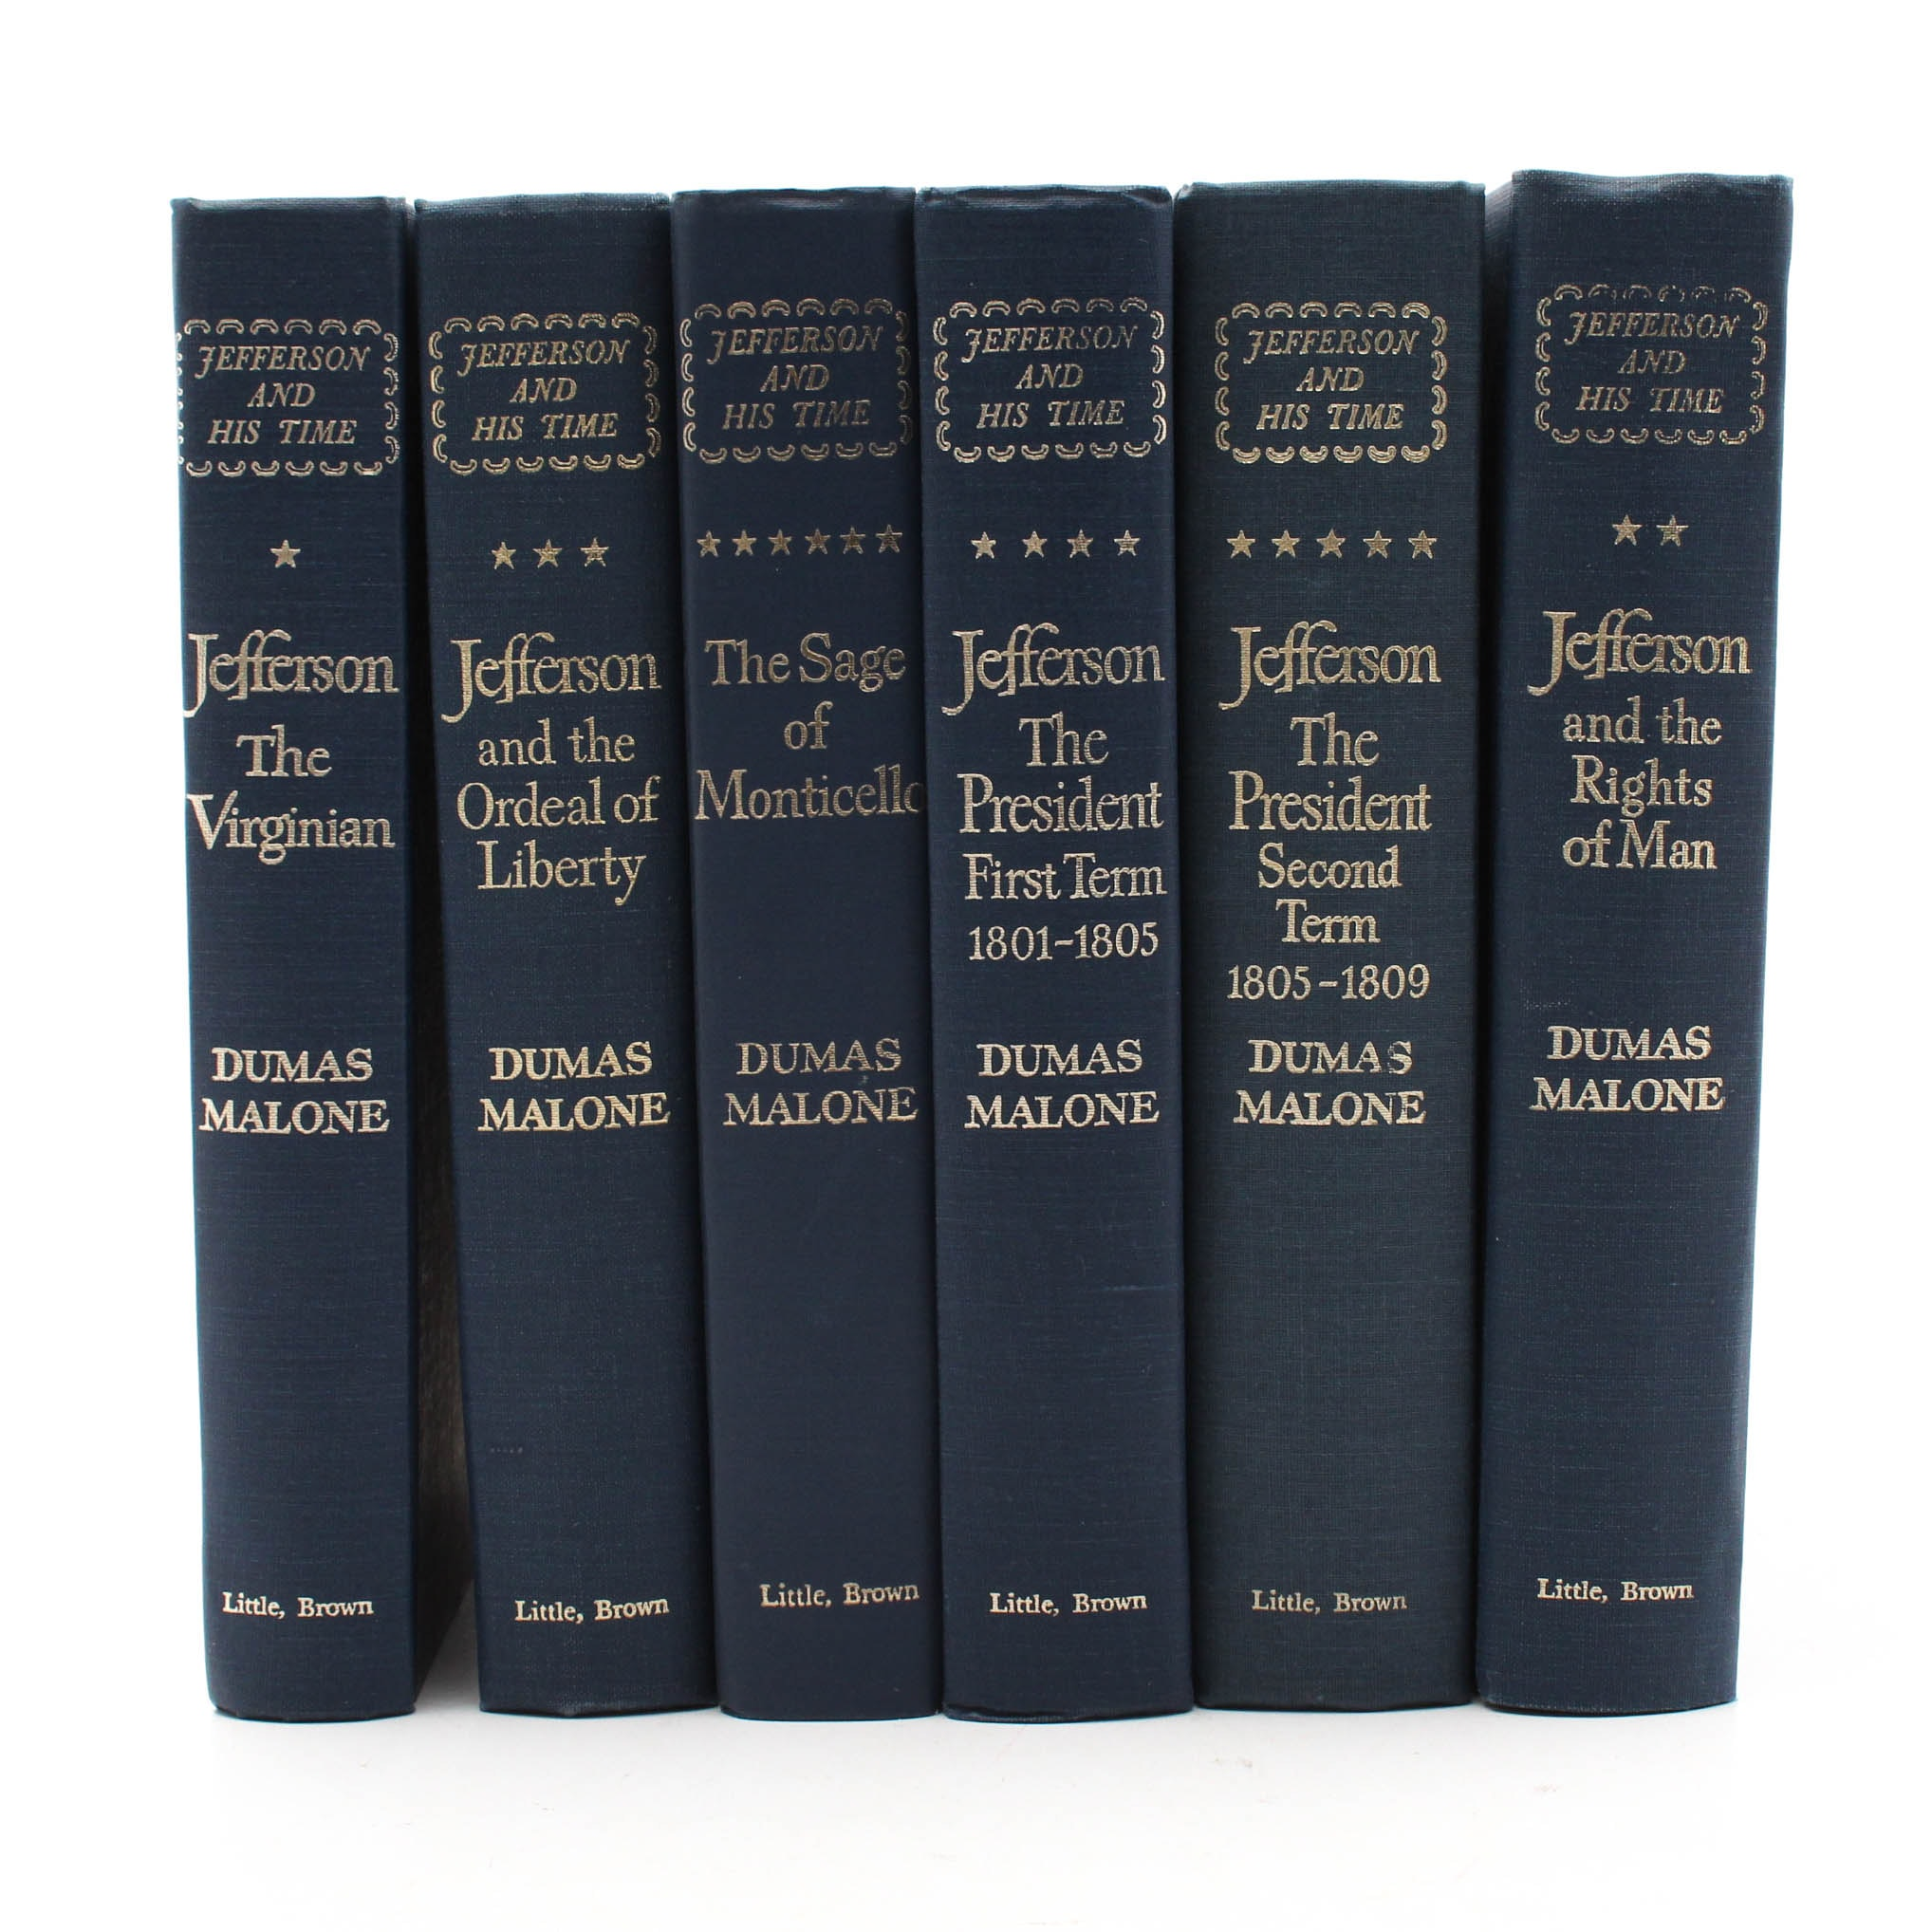 """1951 """"Jefferson and His Time"""" by Dumas Malone Six Volume Set"""